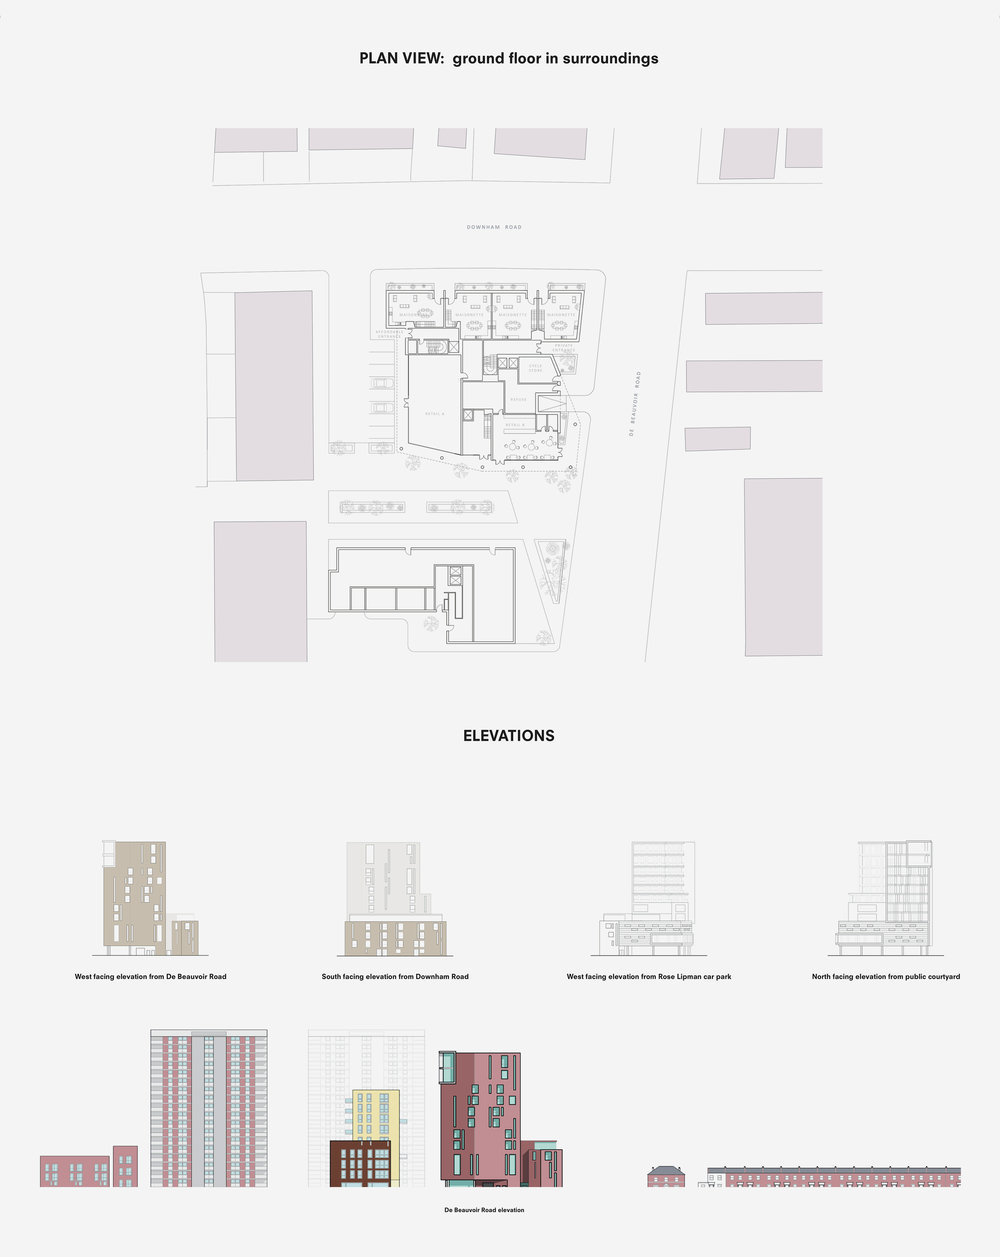 Jonathan Hoskins - Catallax Point - A New Rose Lipman for De Beauvoir - Architects plans - excerpt.jpg